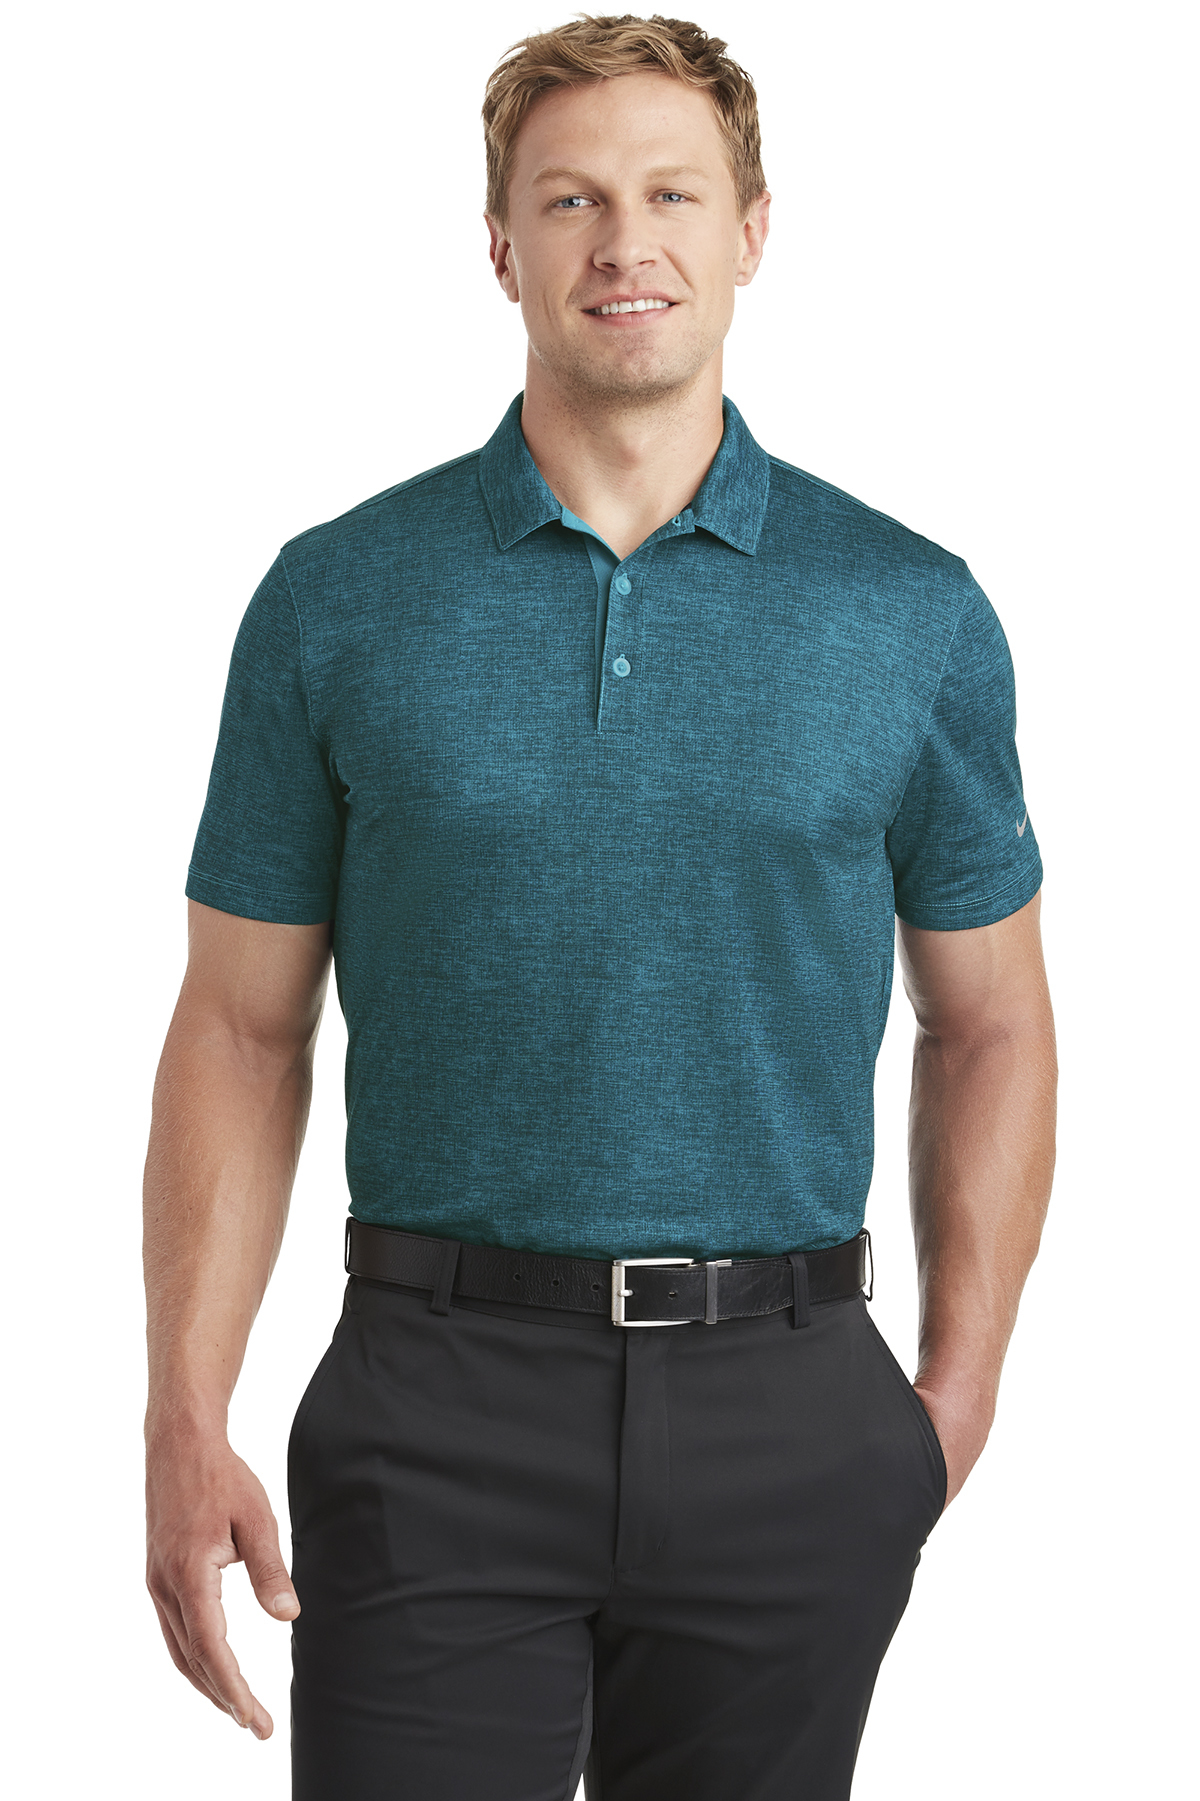 Nike Dri Fit Crosshatch Polo Performance Polosknits Sanmar